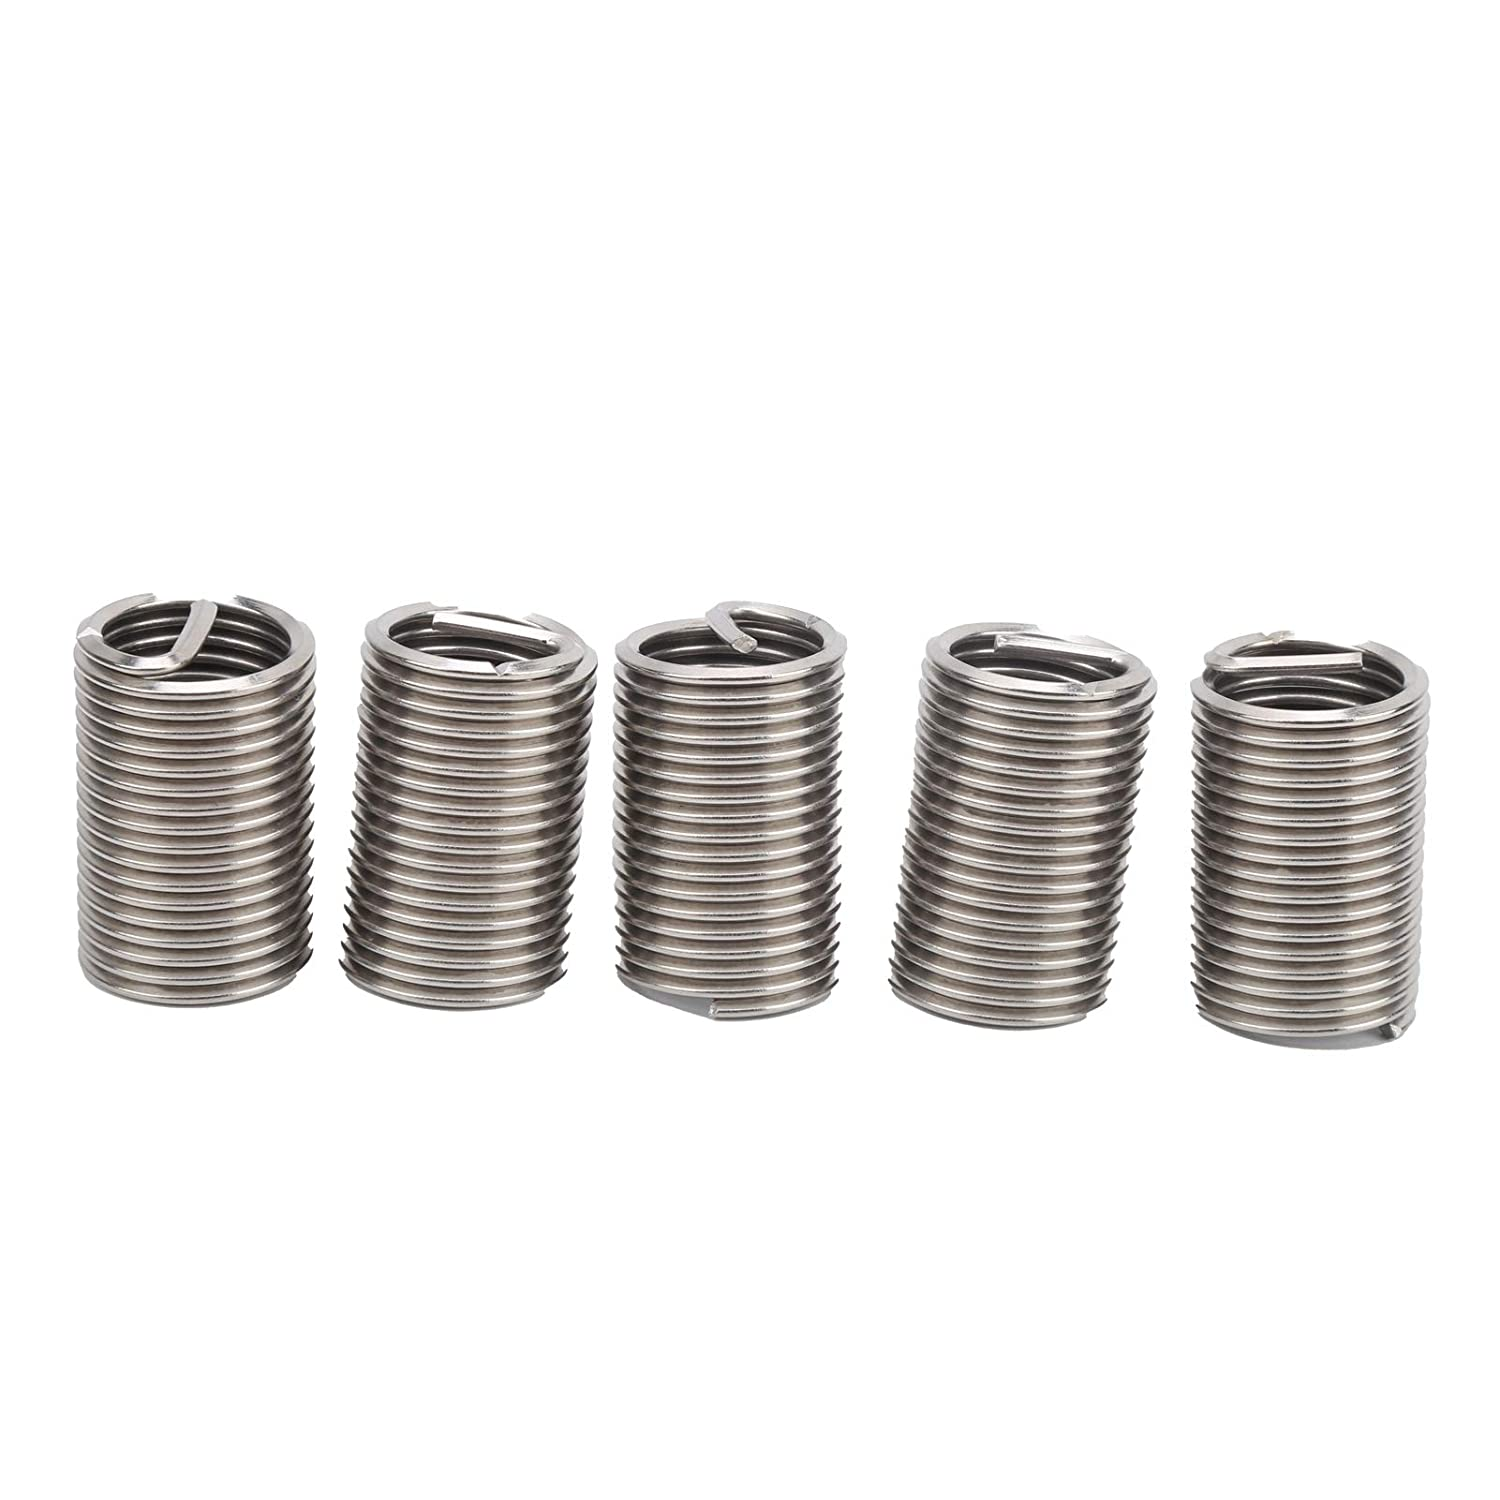 Female Thread Inserts Section Max 57% OFF Wire Special price for a limited time Sleeves St Steel